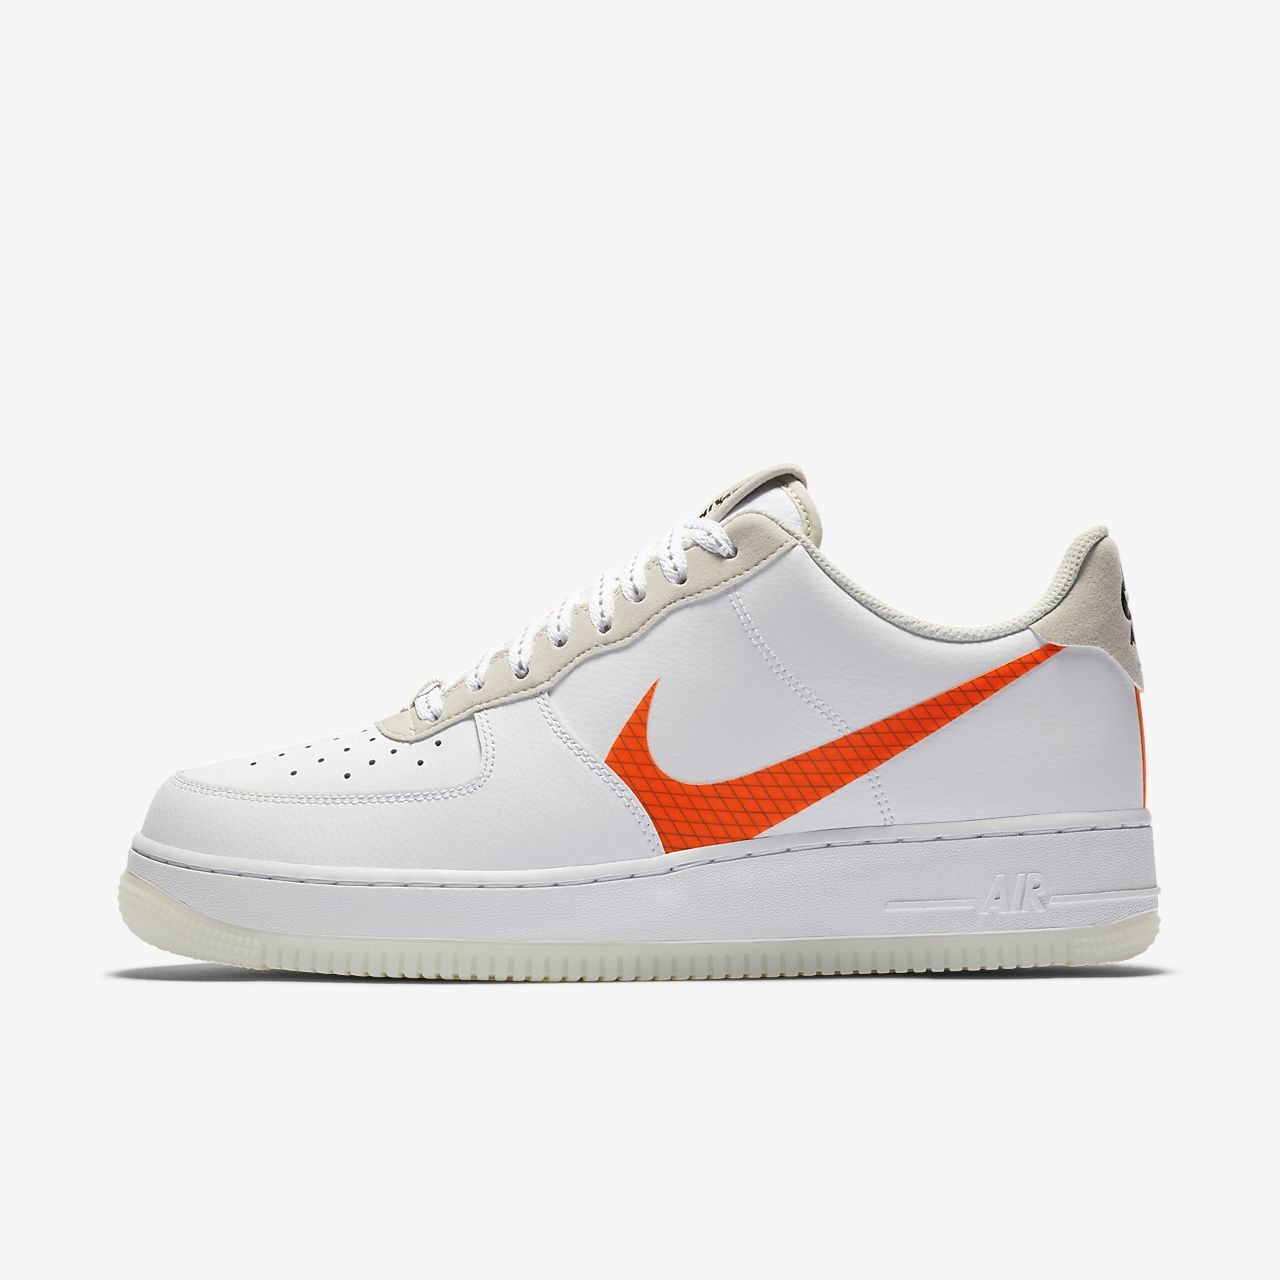 nike air force 1 07 lv8 alte